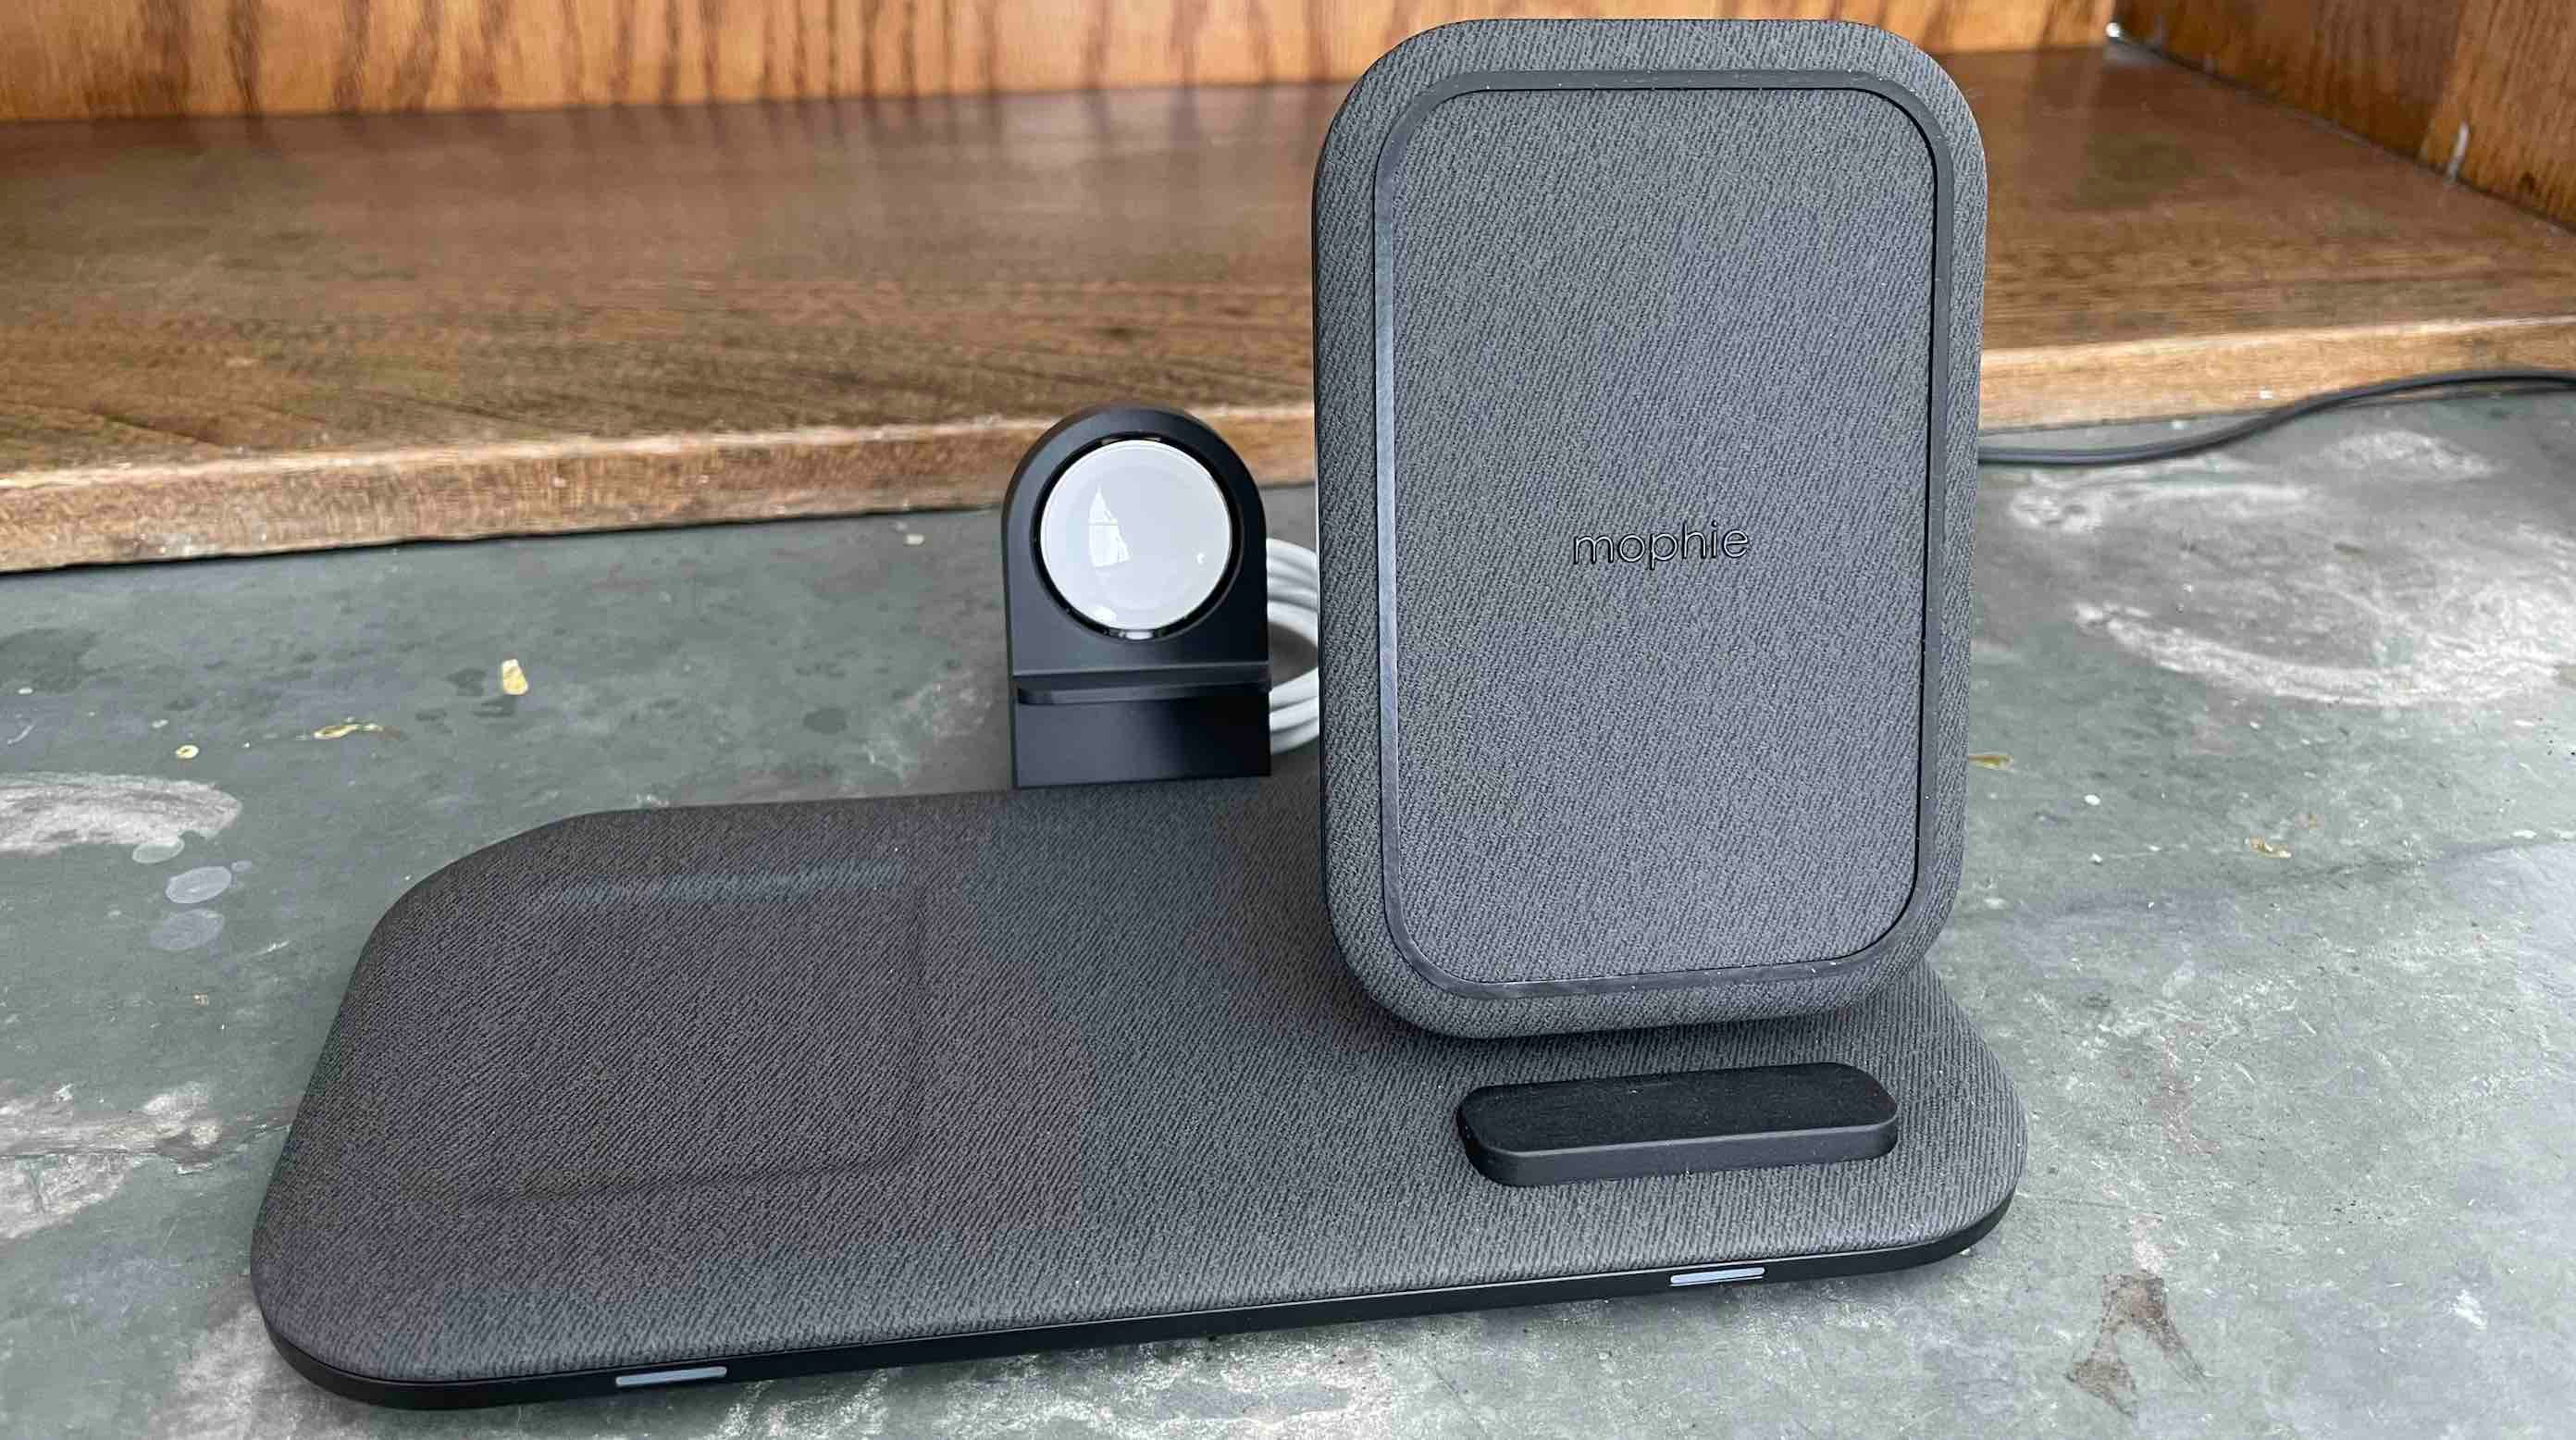 Mophie Charging Station+ for Apple Watch, iPhone, AirPods close up